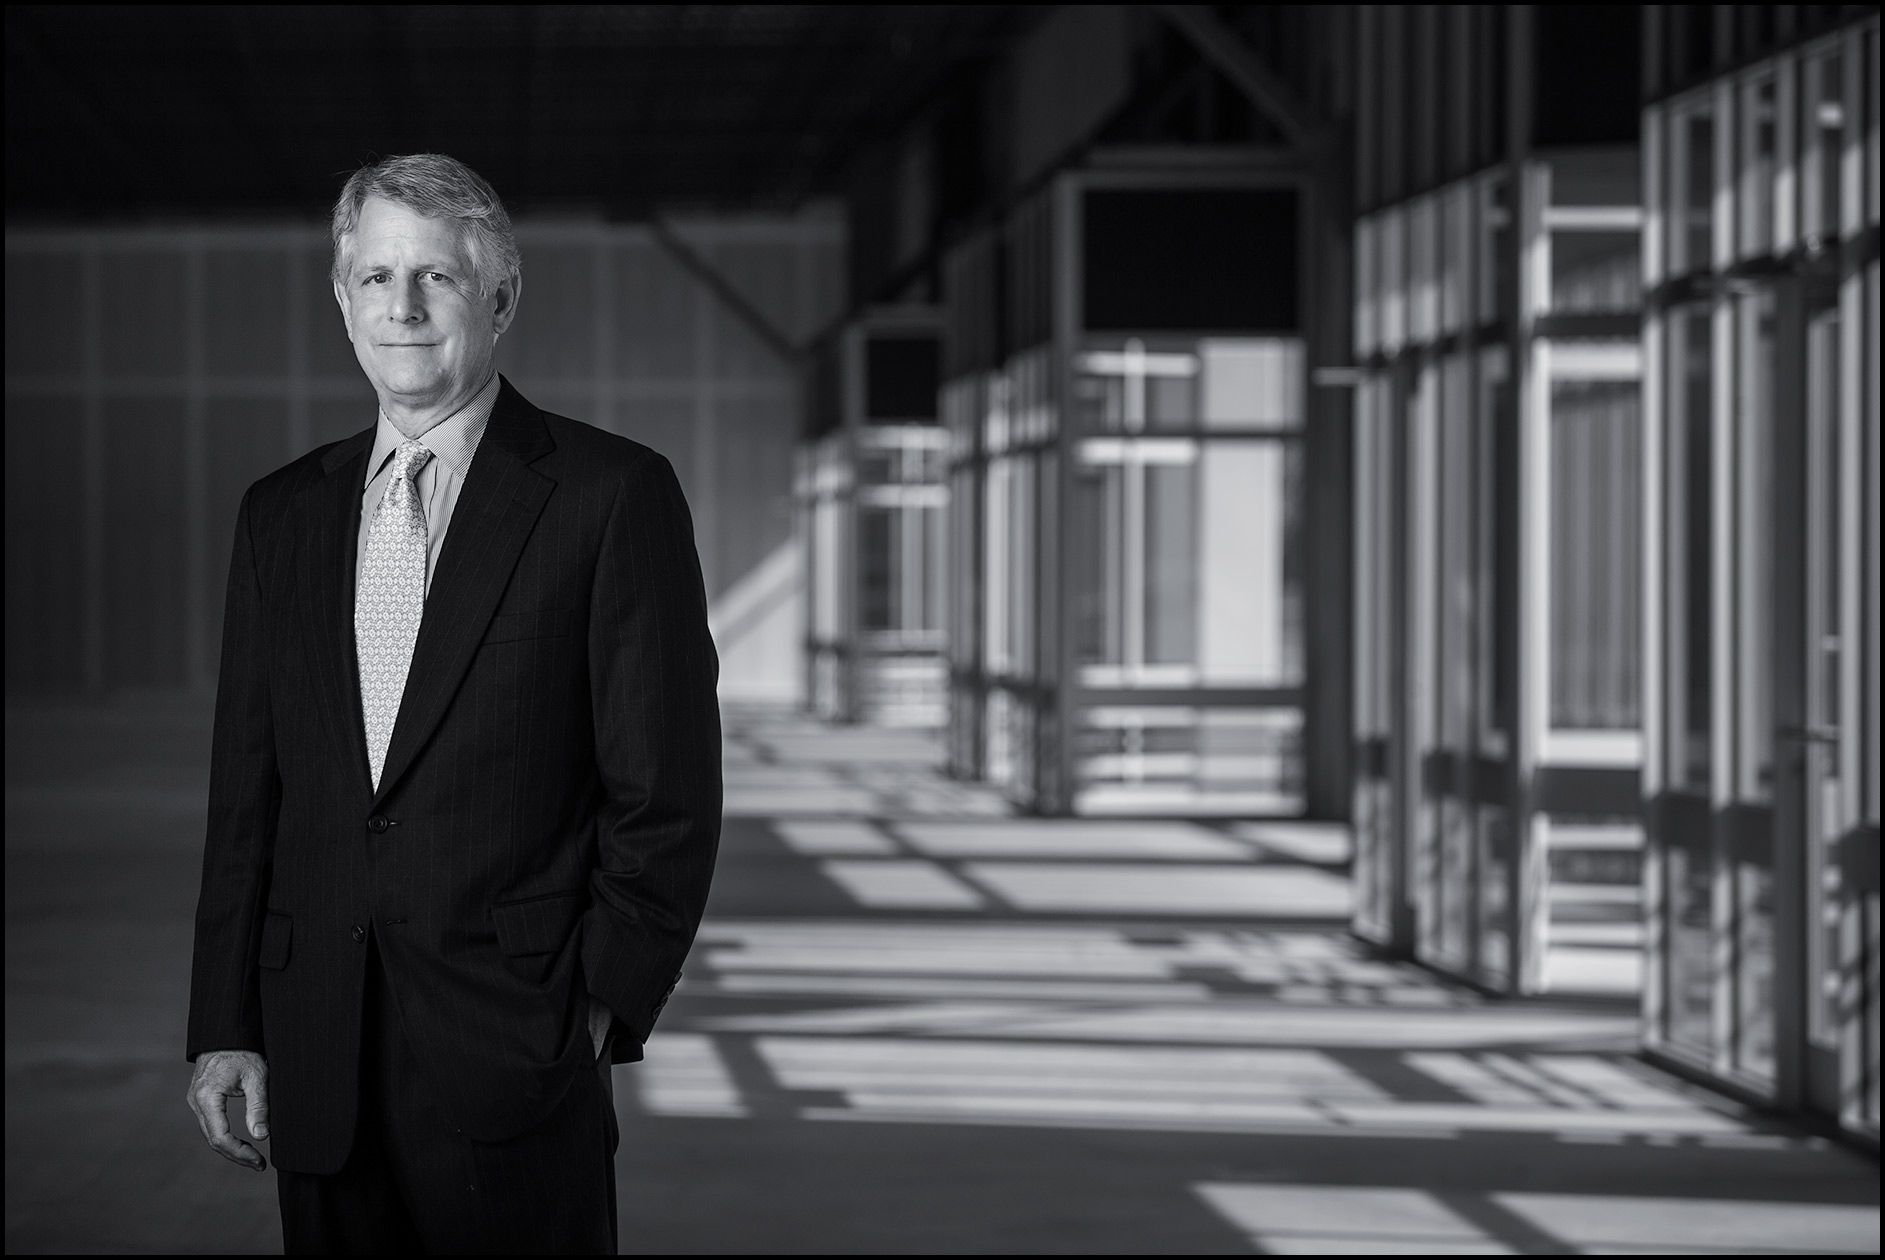 A real estate CEO stands in a vacant commercial warehouse space.